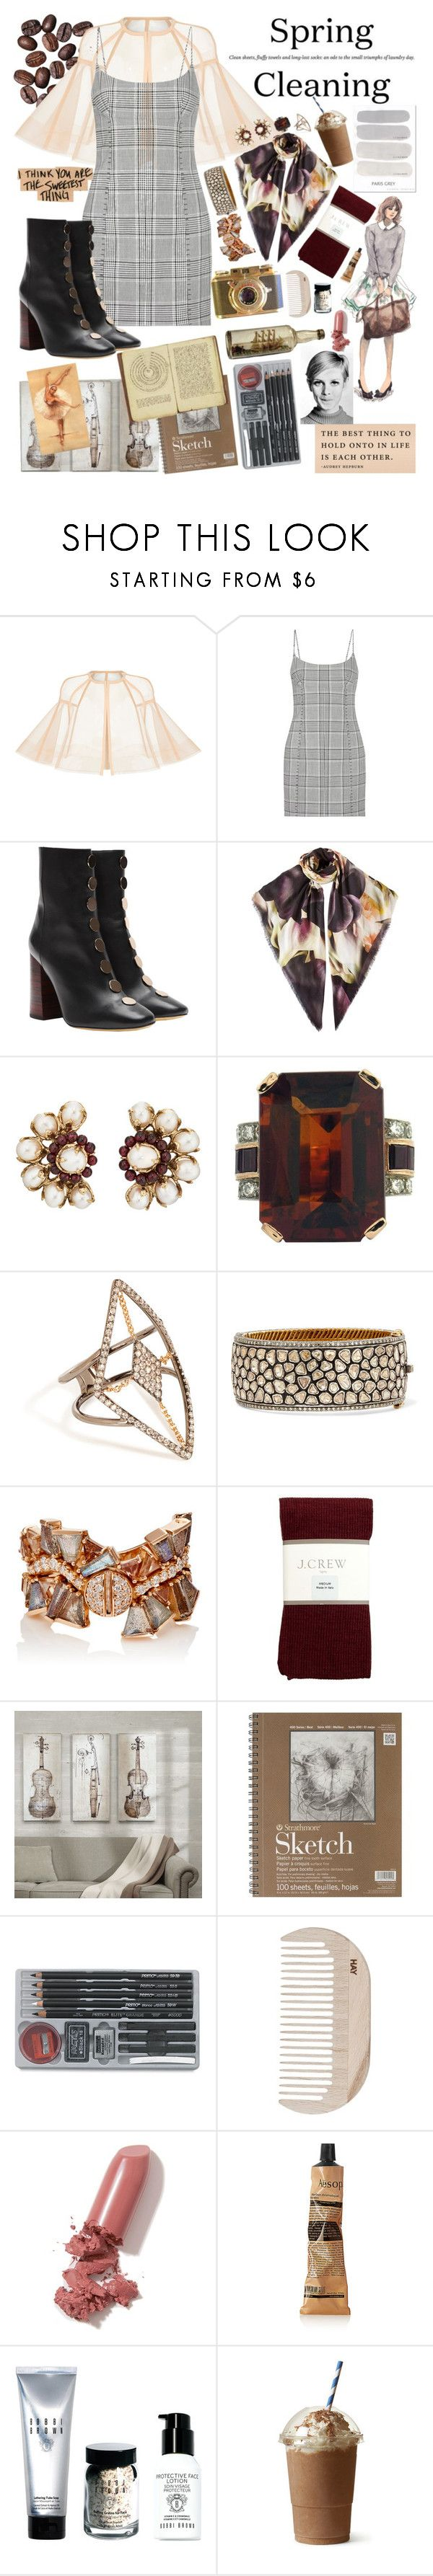 """Just to be close to you"" by carmellascreations ❤ liked on Polyvore featuring Alex Perry, Alexander Wang, E L L E R Y, Ternary London, Goossens, Diane Kordas, Amrapali, Nak Armstrong, J.Crew and Madison Park"